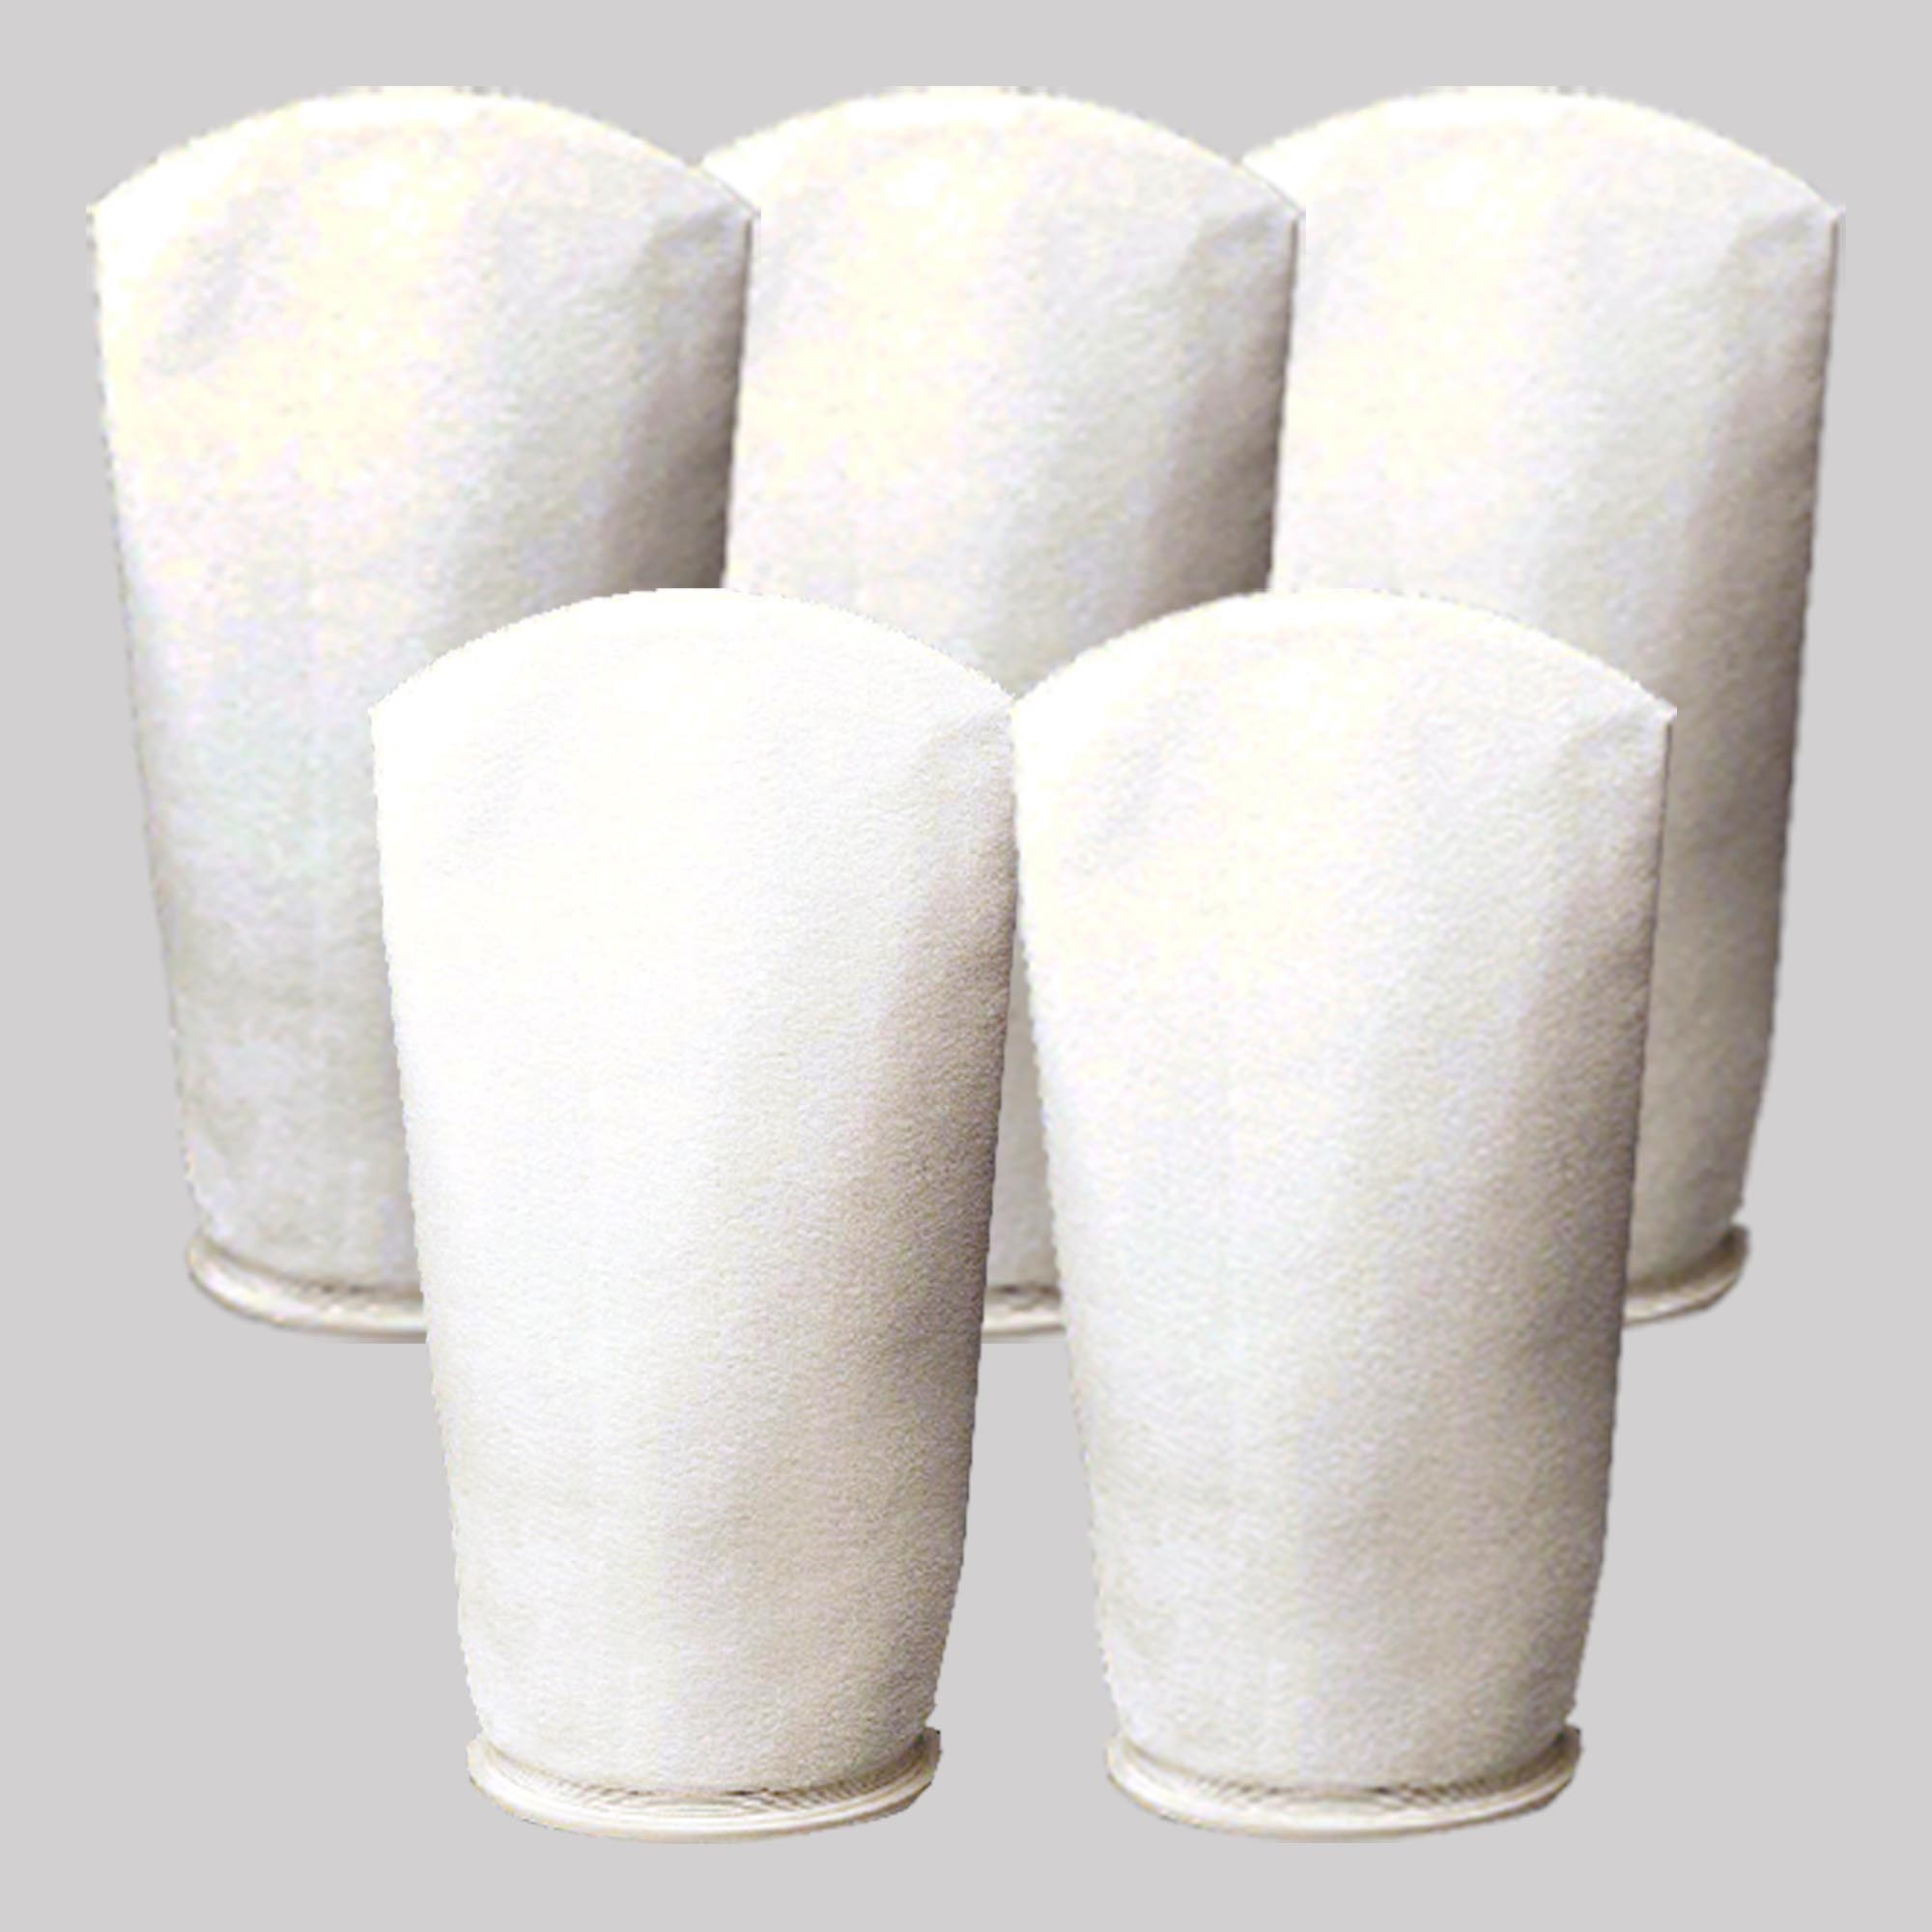 Filter bags are available in 1, 5, 25, 50, 100 and 200 micron mesh to suit the needs of your application.